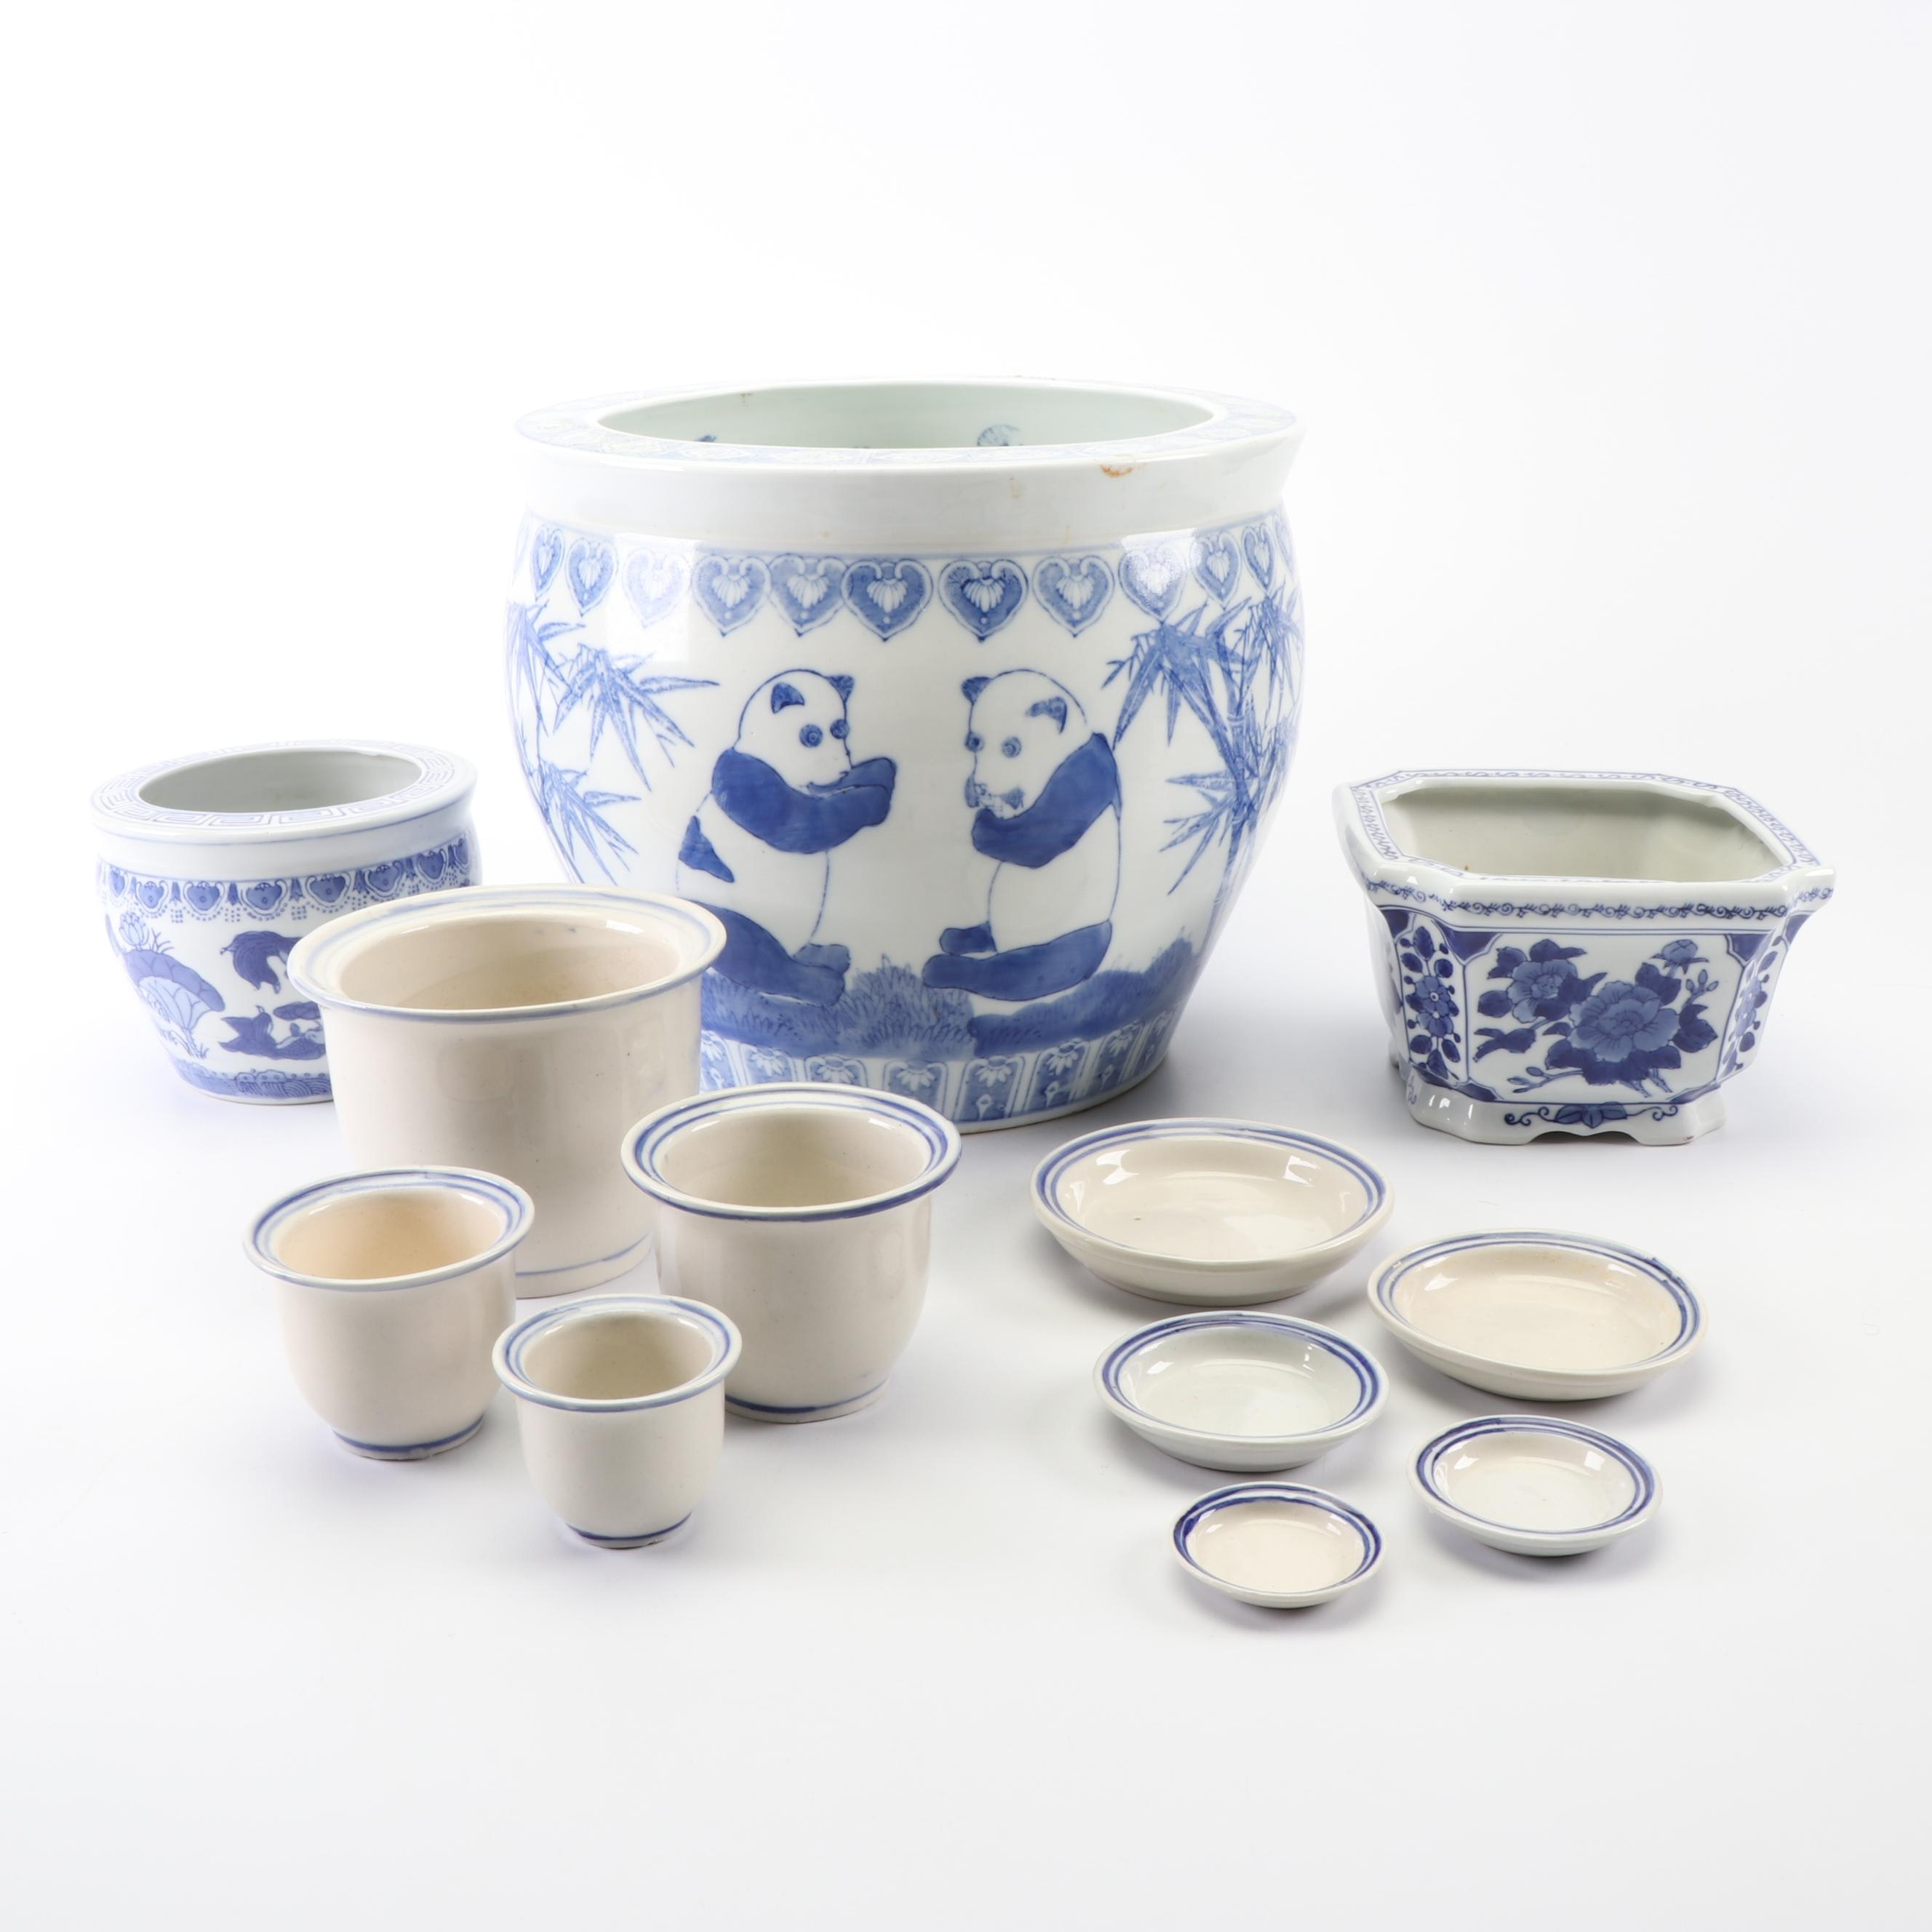 Chinese Blue and White Ceramic Planters and Bowls